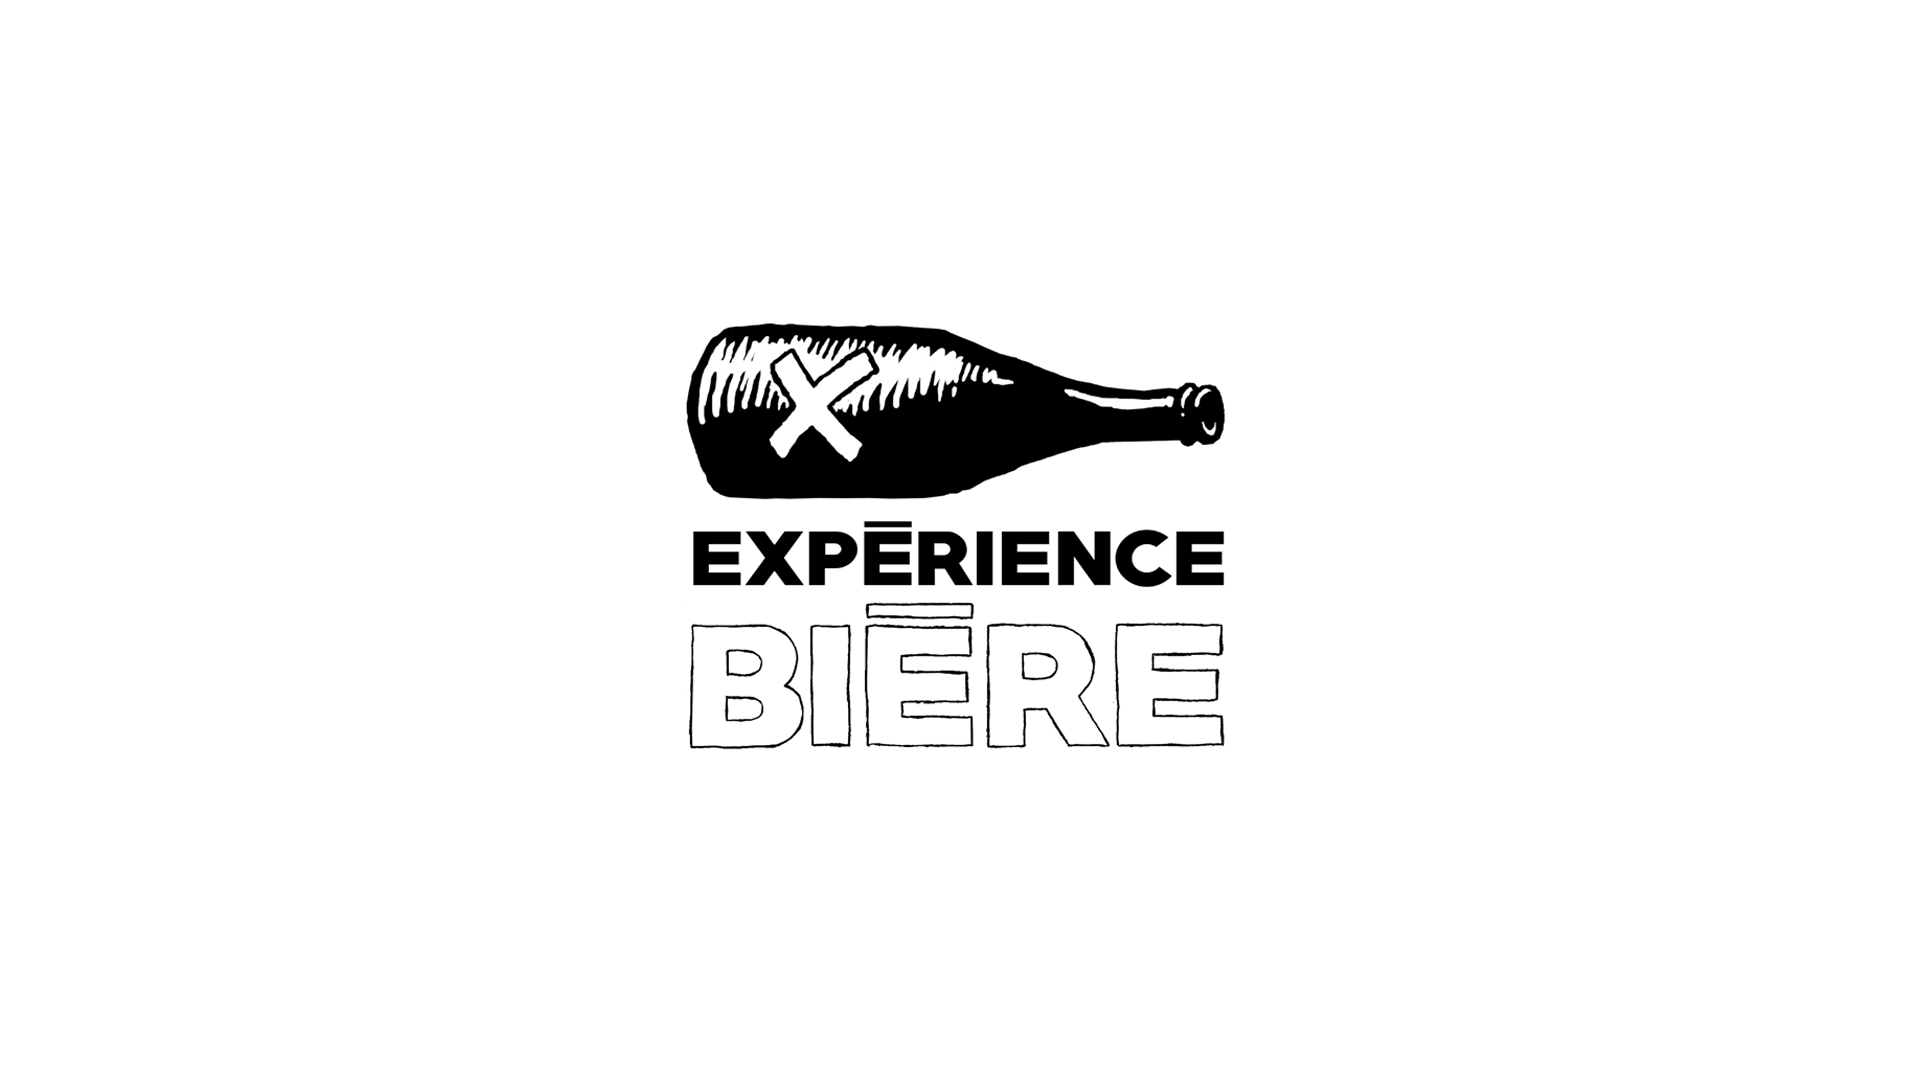 Experience Biere